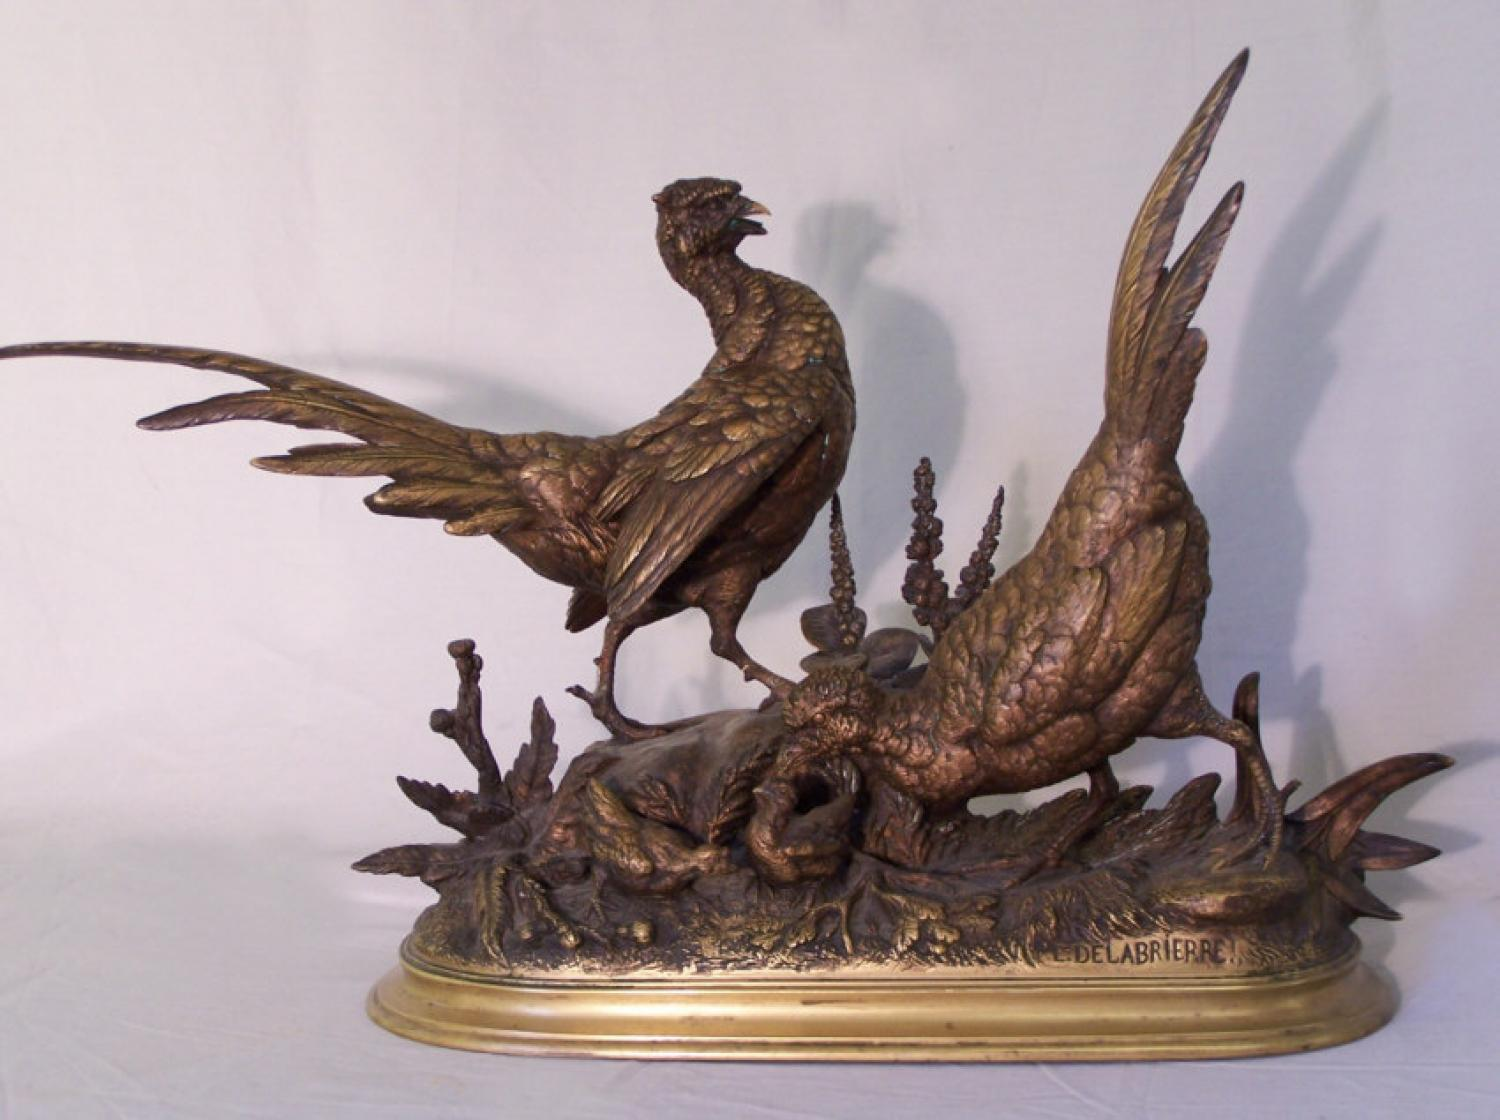 Edouard Paul Delabrierre bronze sculpture pheasant in marsh